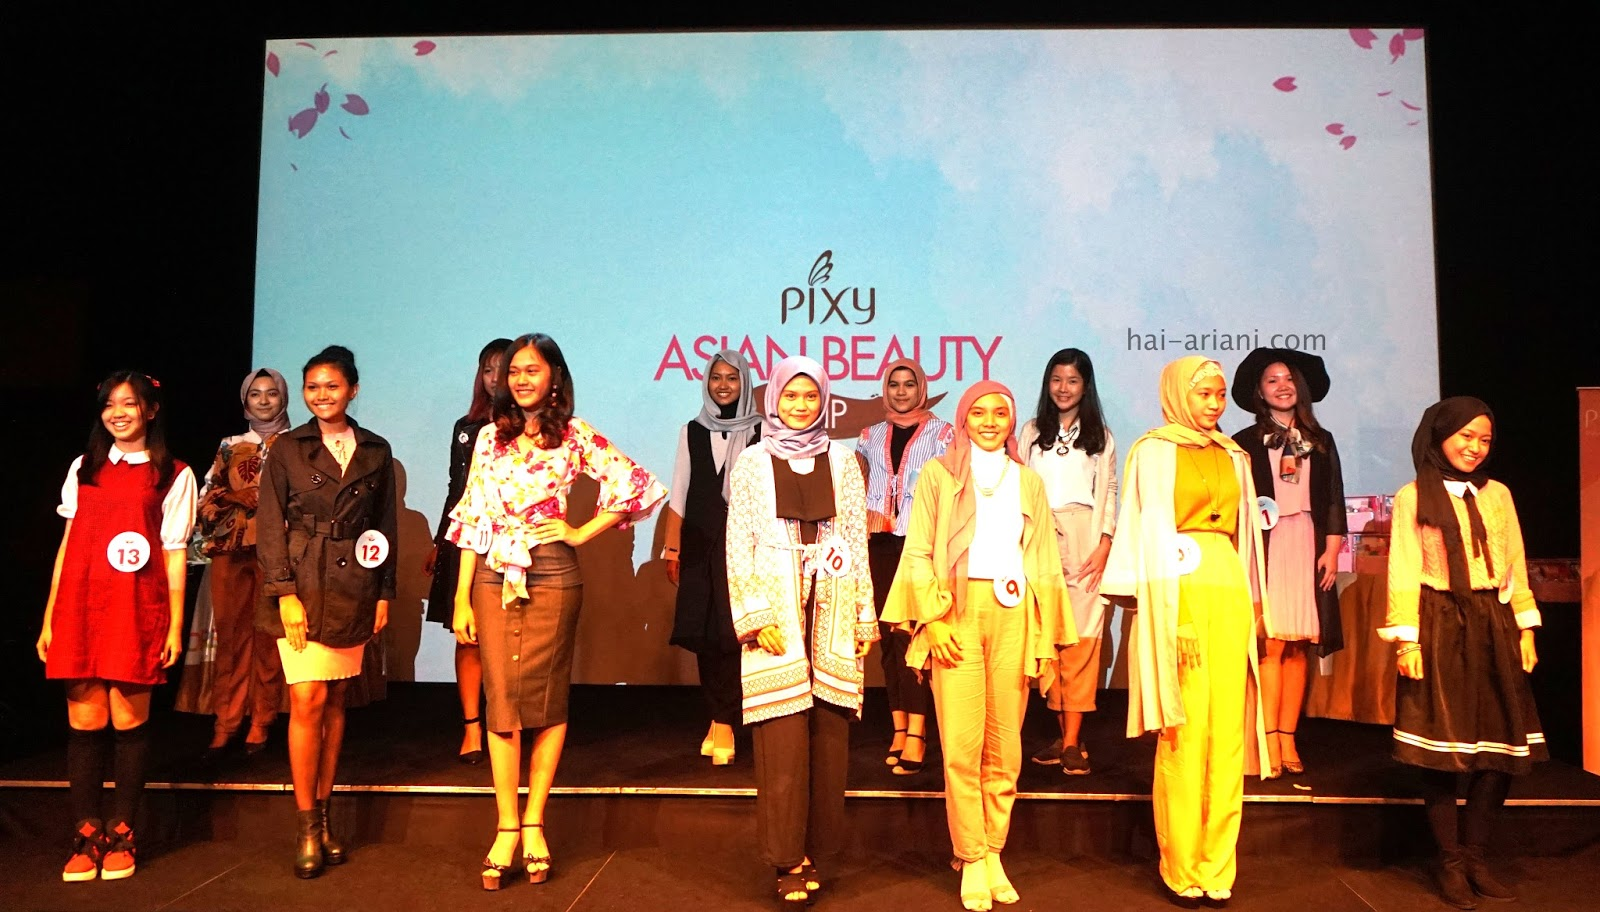 PIXY ASIAN BEAUTY TRIP 2017